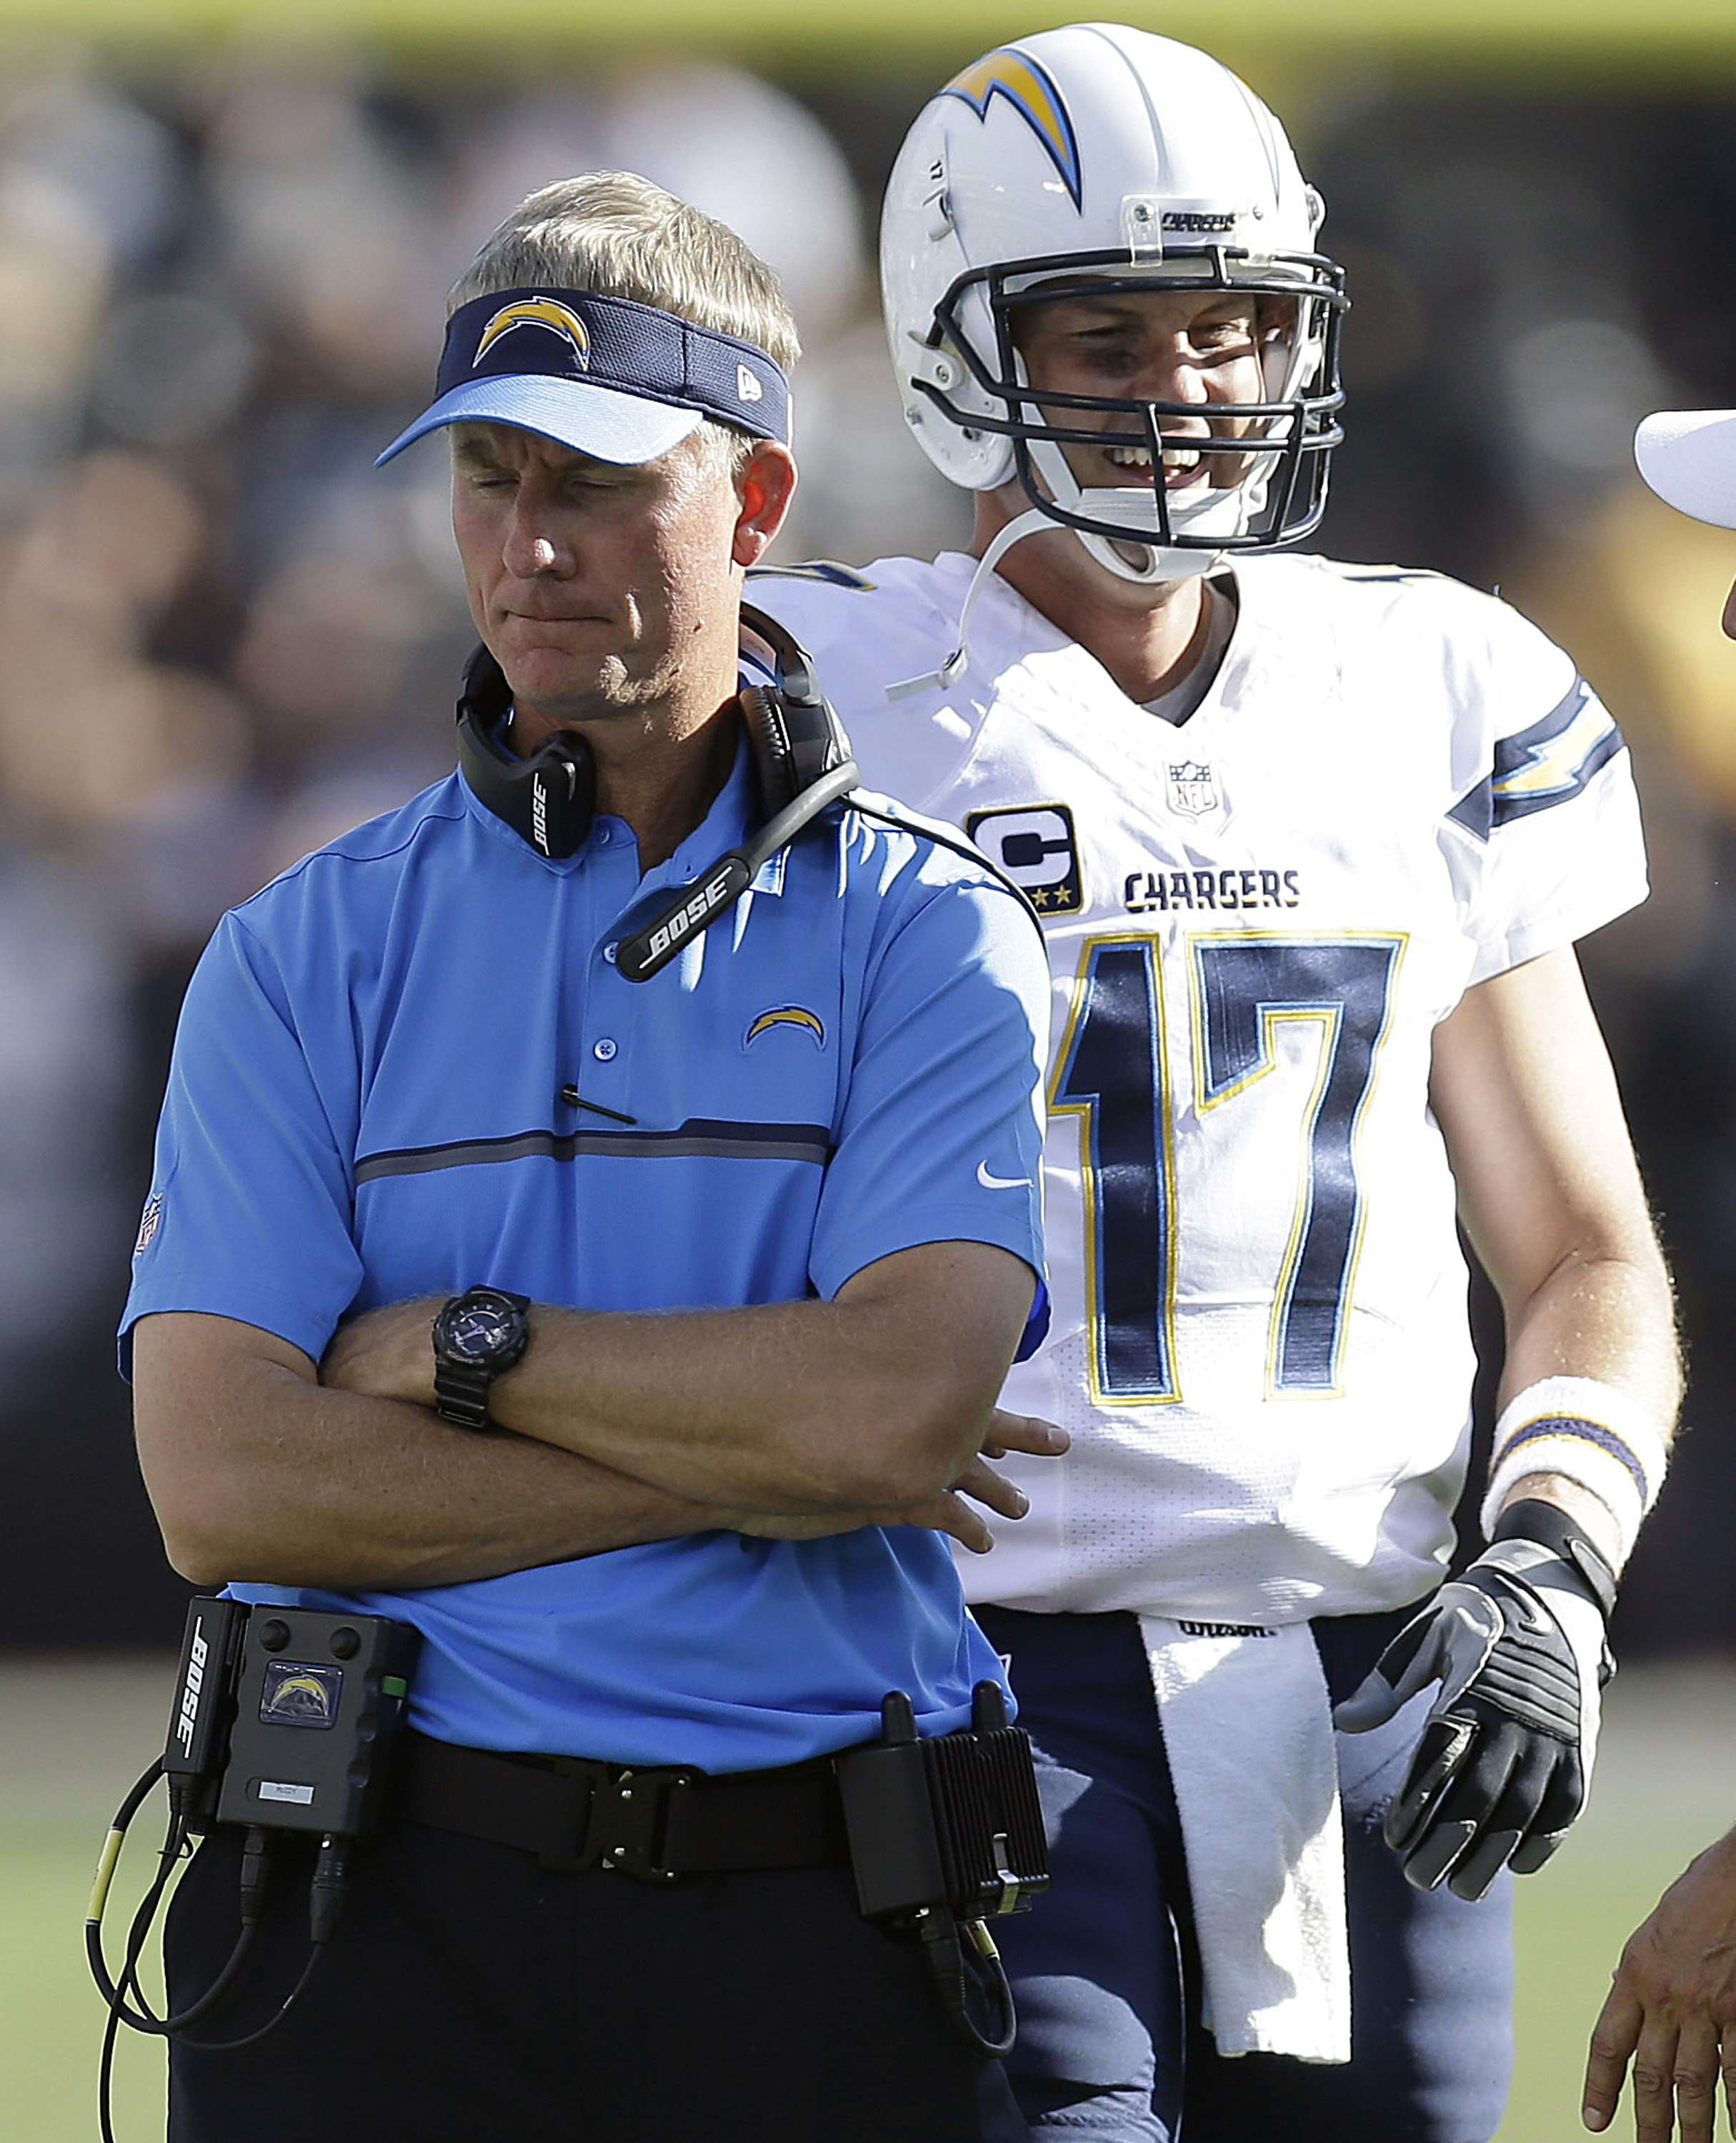 San Diego Chargers head coach Mike McCoy, left, stands in front of quarterback Philip Rivers (17) during the second half of an NFL football game against the Oakland Raiders in Oakland, Calif., Sunday, Oct. 9, 2016. (AP Photo/Ben Margot)